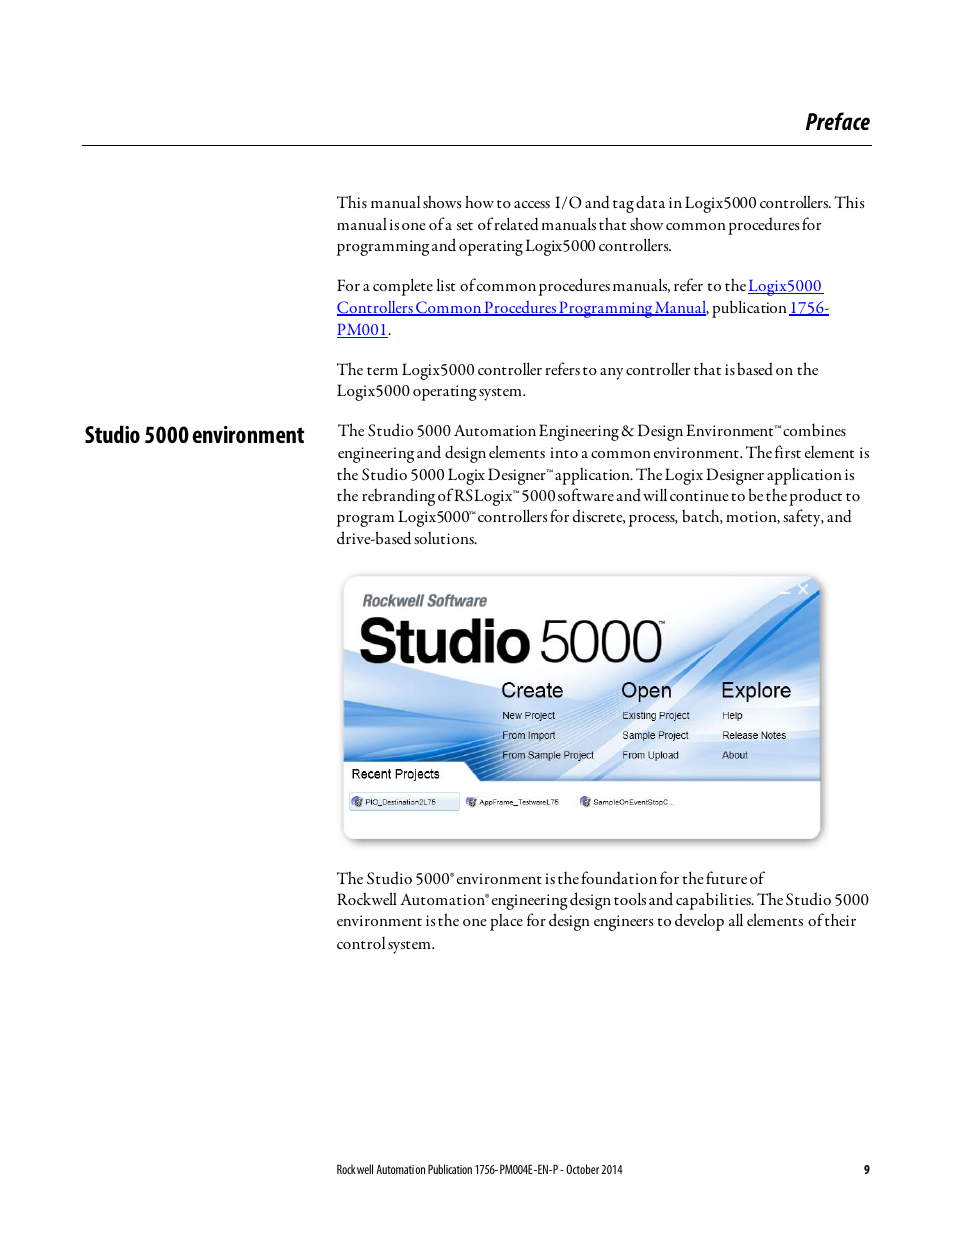 Preface, Studio 5000 environment   Rockwell Automation Logix5000  Controllers I/O and Tag Data Programming Manual User Manual   Page 9 / 86